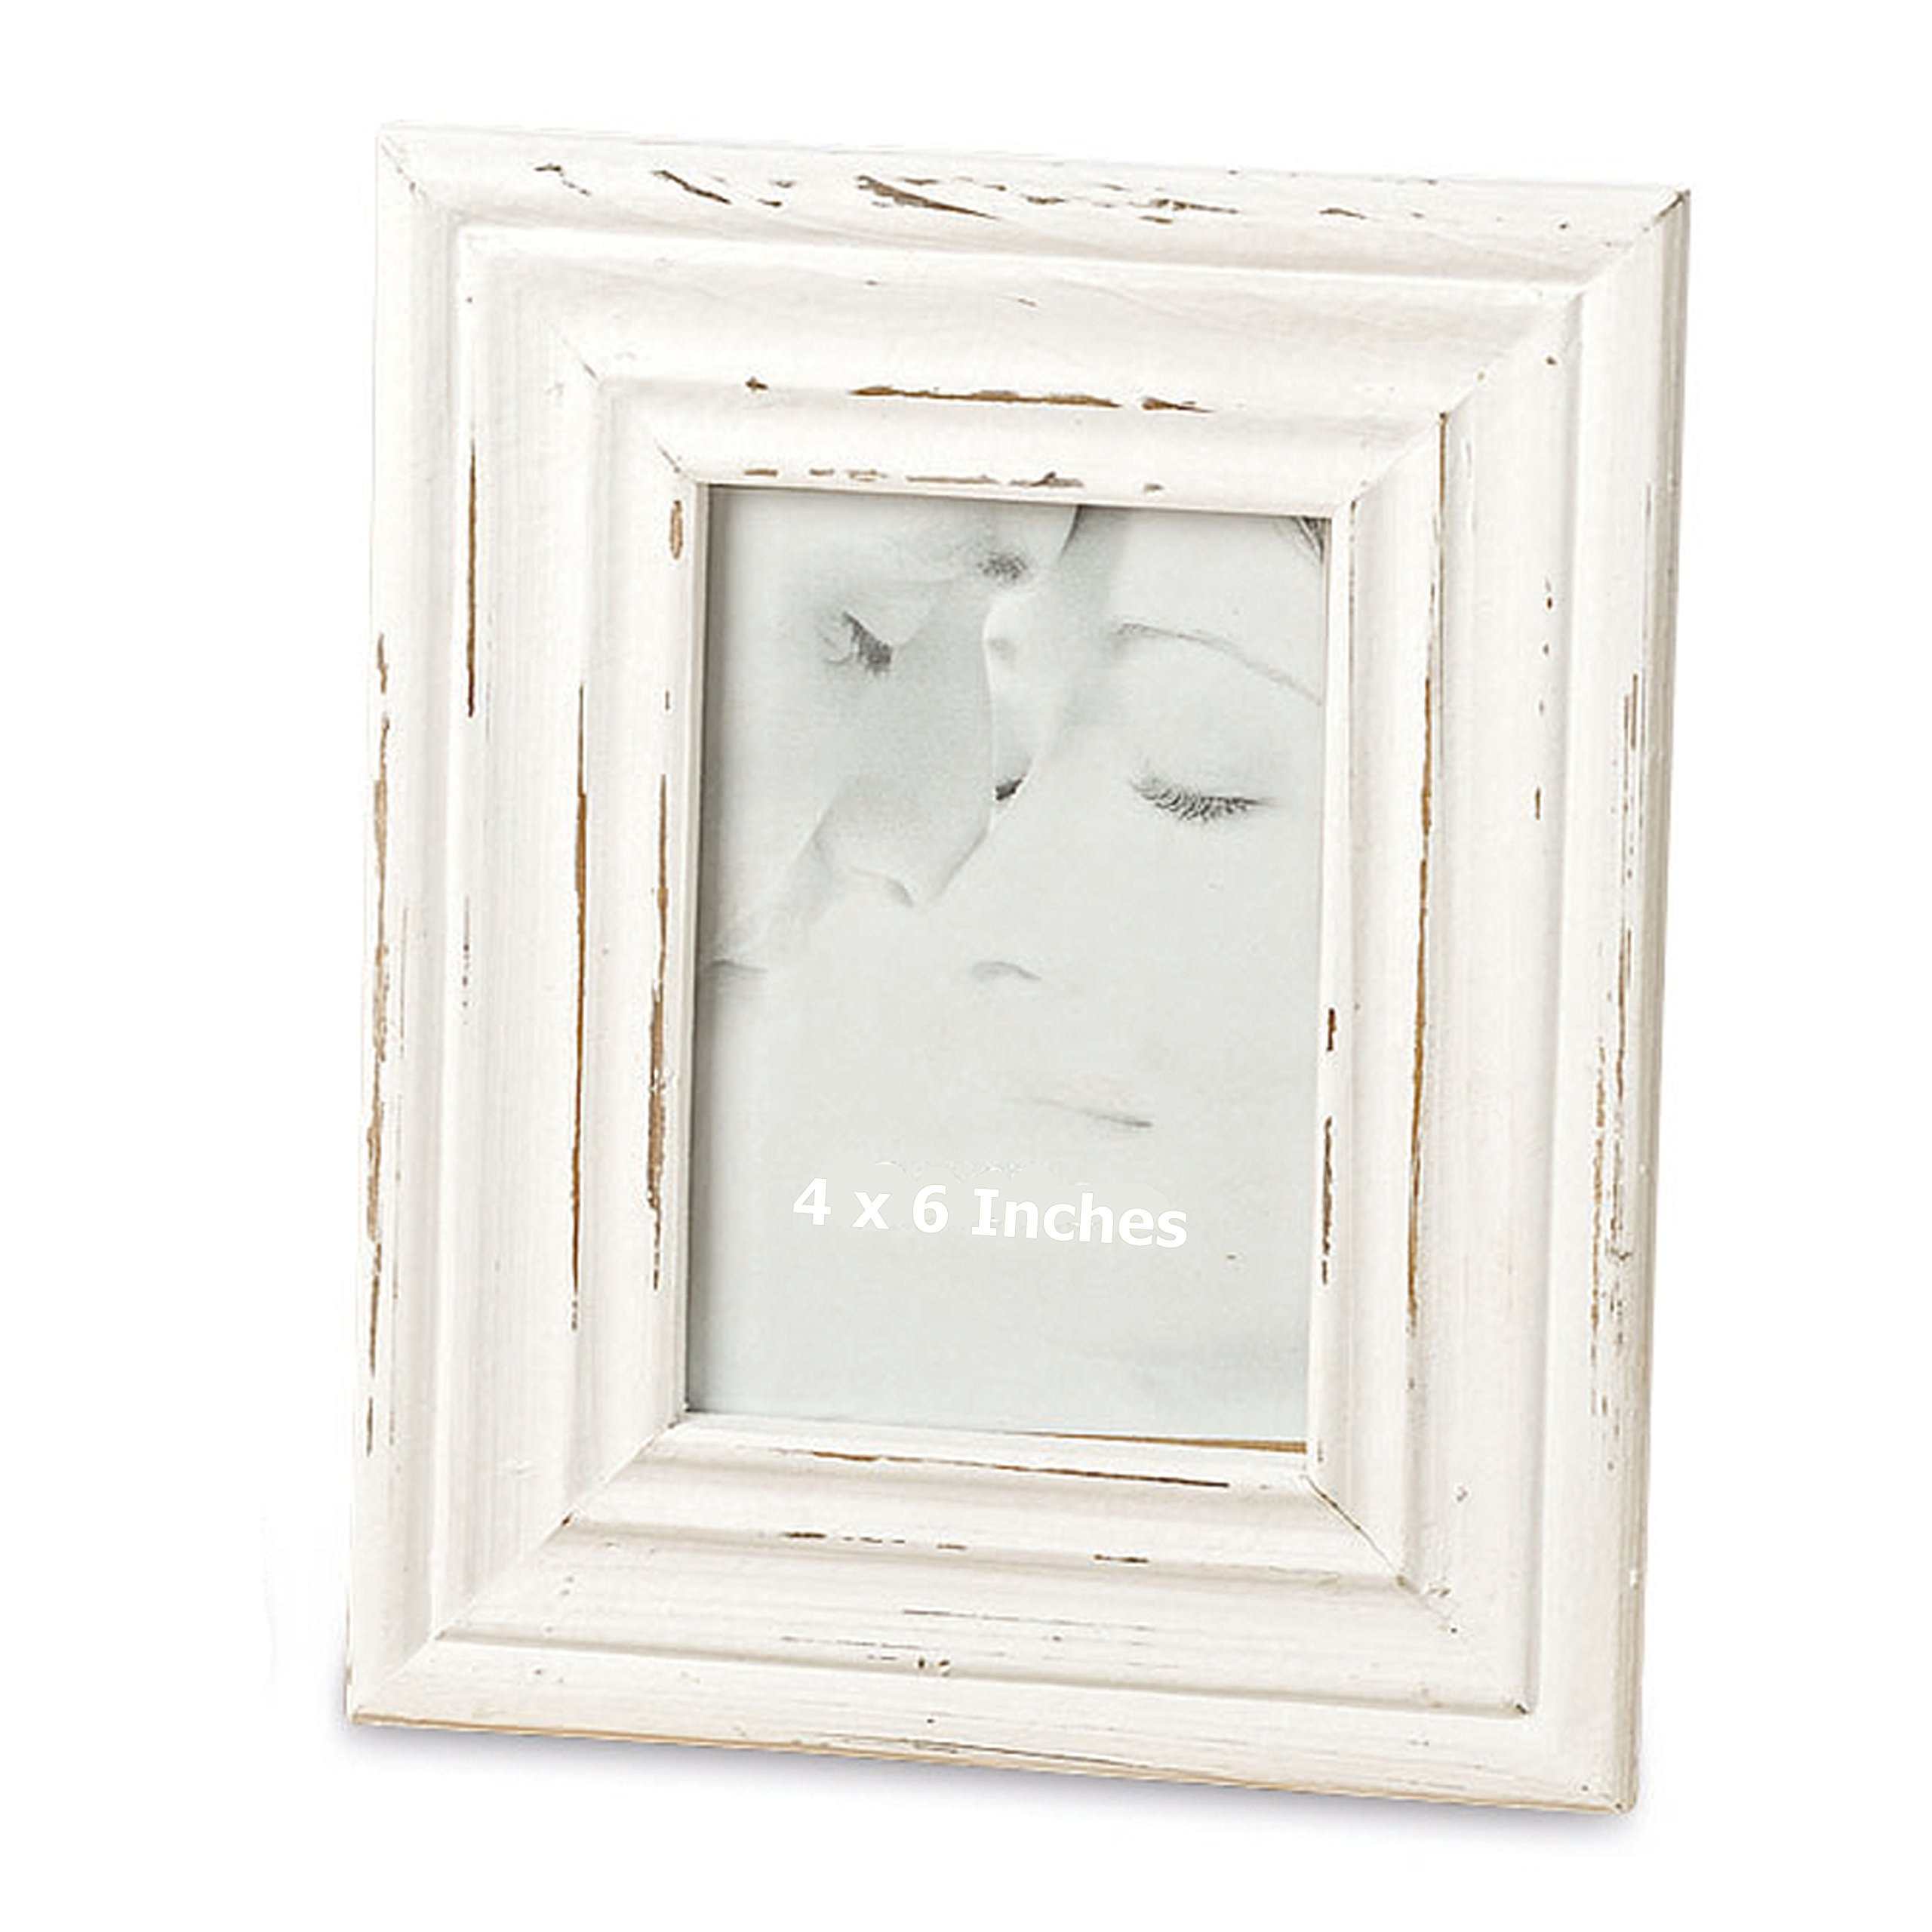 Whole House Worlds The Stockbridge Photo Frame, Rustic Bevels, Creamy White, Vintage Distressed Finish, 7 3/4 x 9 3/4 Inches, 4 x 6 Inch Window, For Table Top Or Wall Display, By